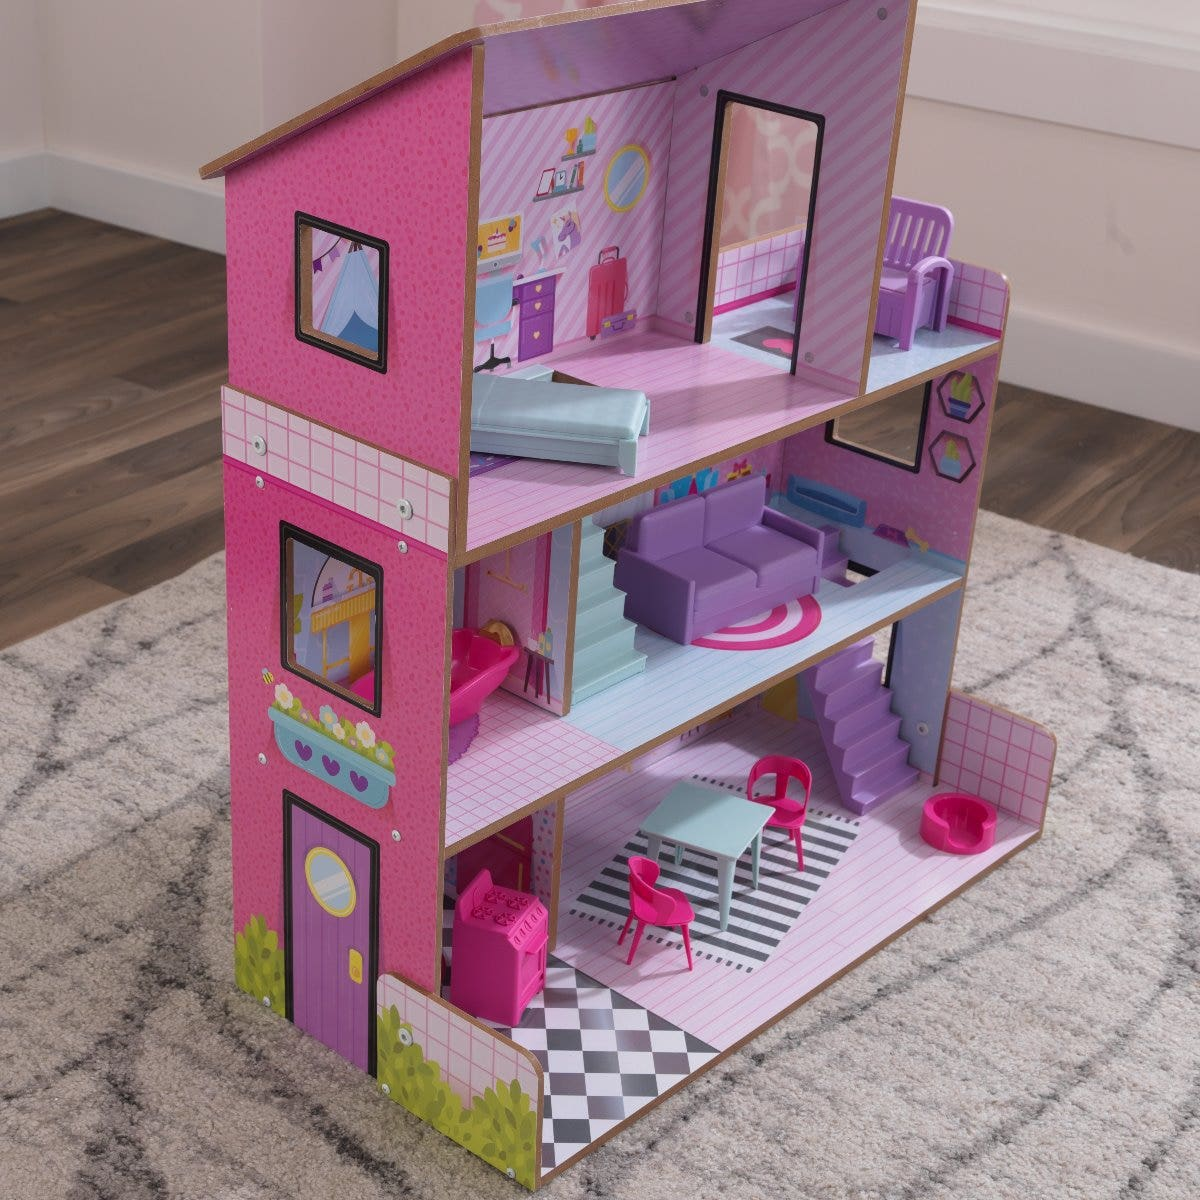 Two staircases for realistic play around the house